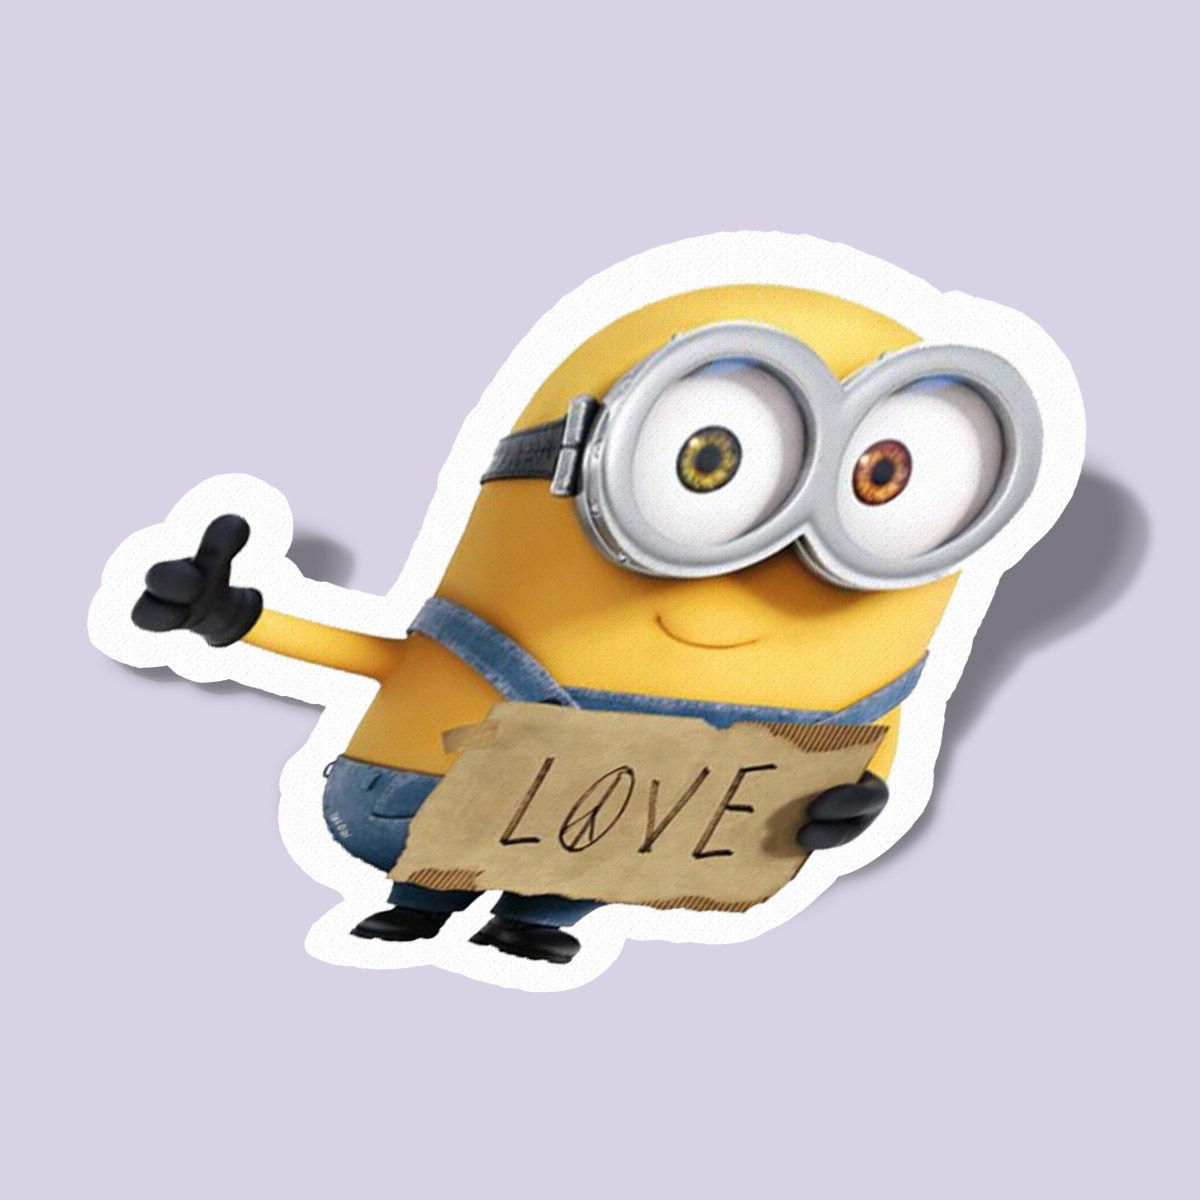 Minion with love and peace